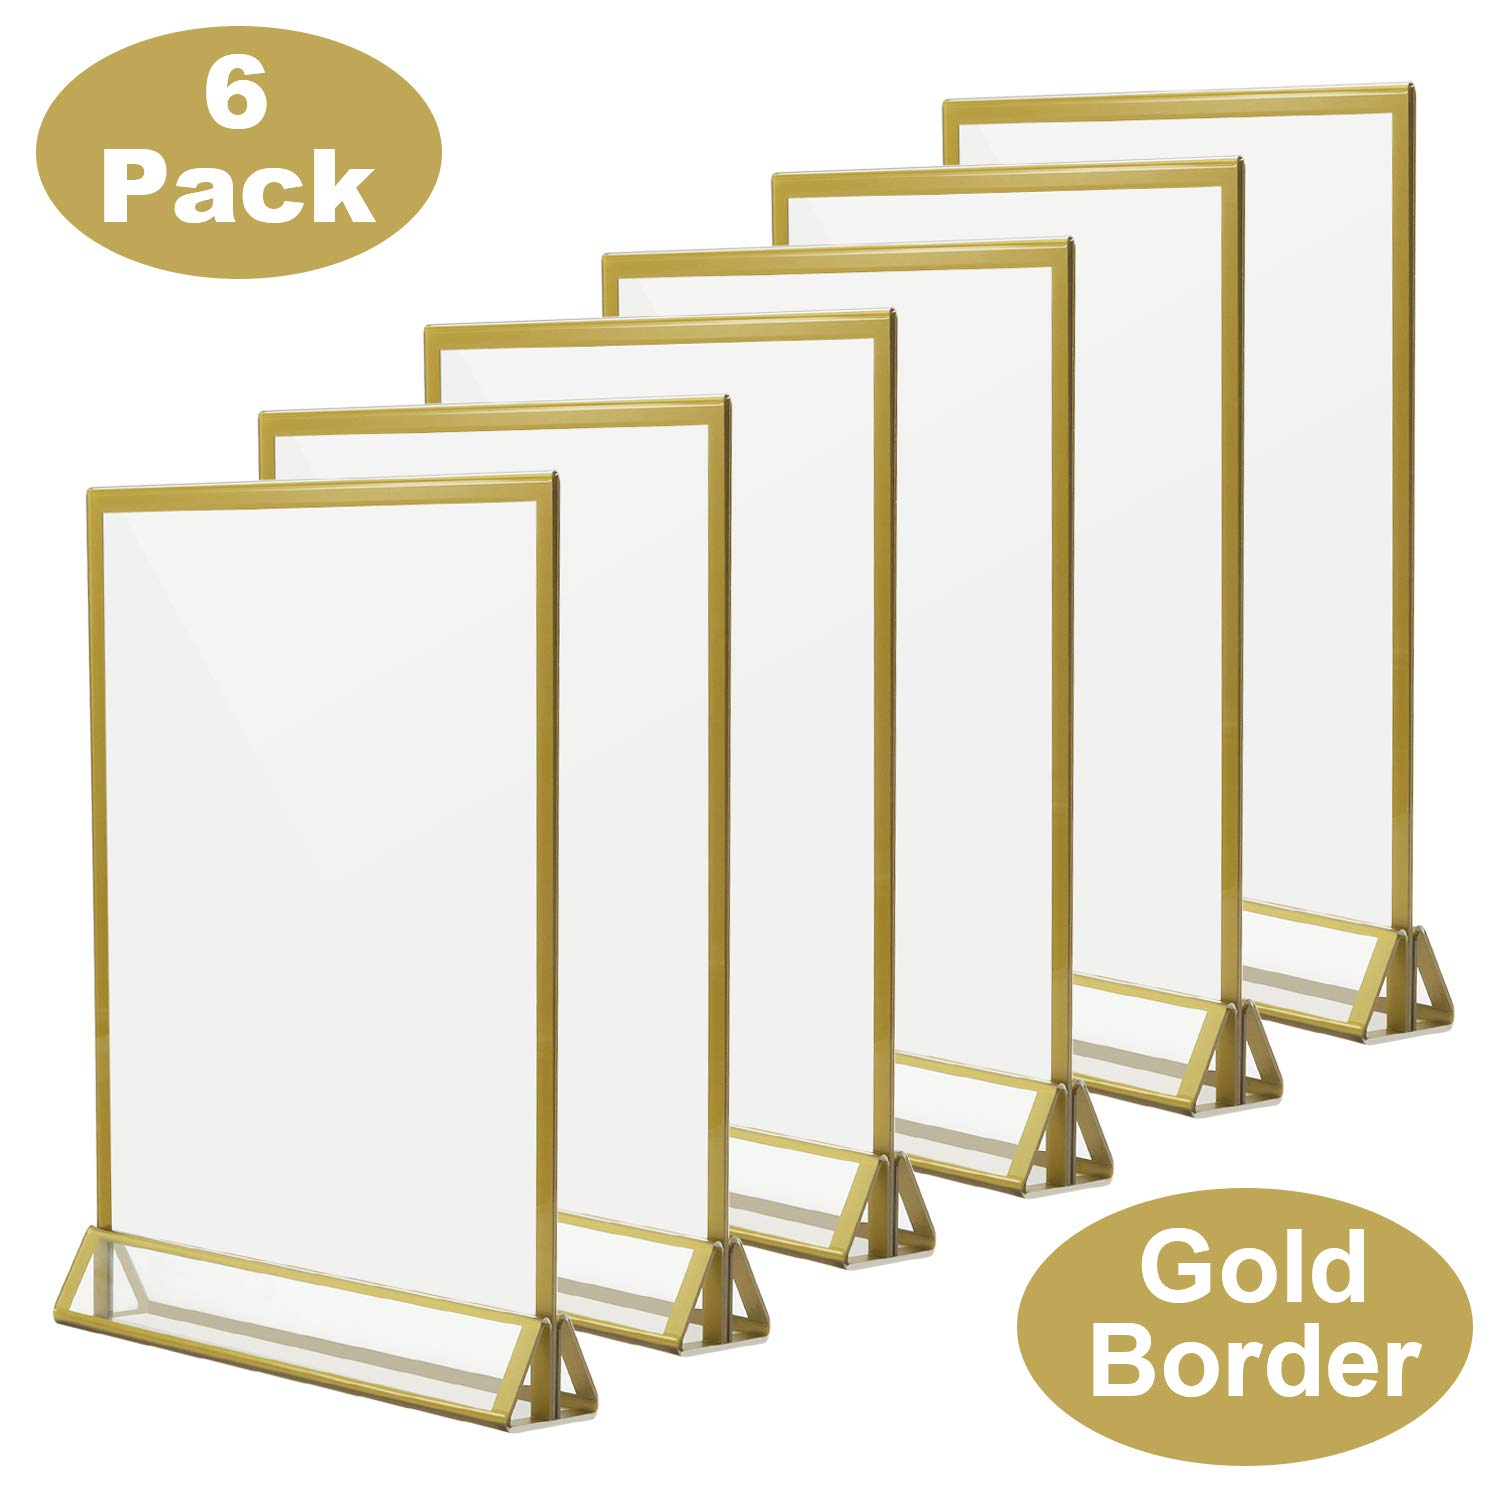 TOROTON Clear Acrylic Sign Holder with Gold Borders and Vertical Stand, 8.5 x 11 Double Sided Table Display for Wedding Table, Photos Display - Pack of 6 by TOROTON